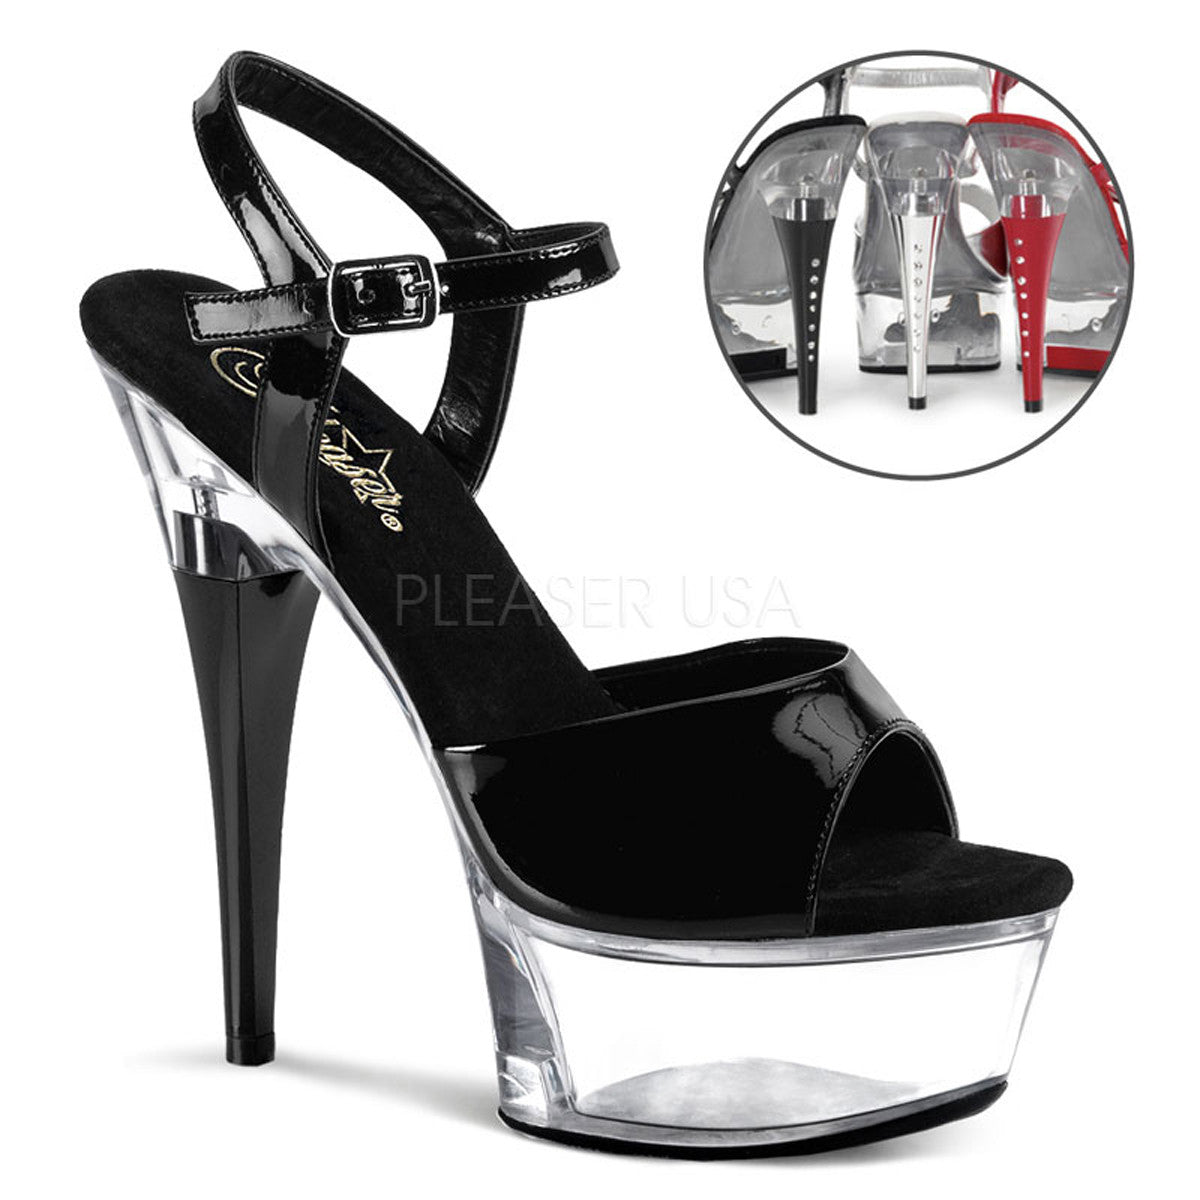 PLEASER CAPTIVA-609 Black Pat-Clear Ankle Strap Sandals - Shoecup.com - 1